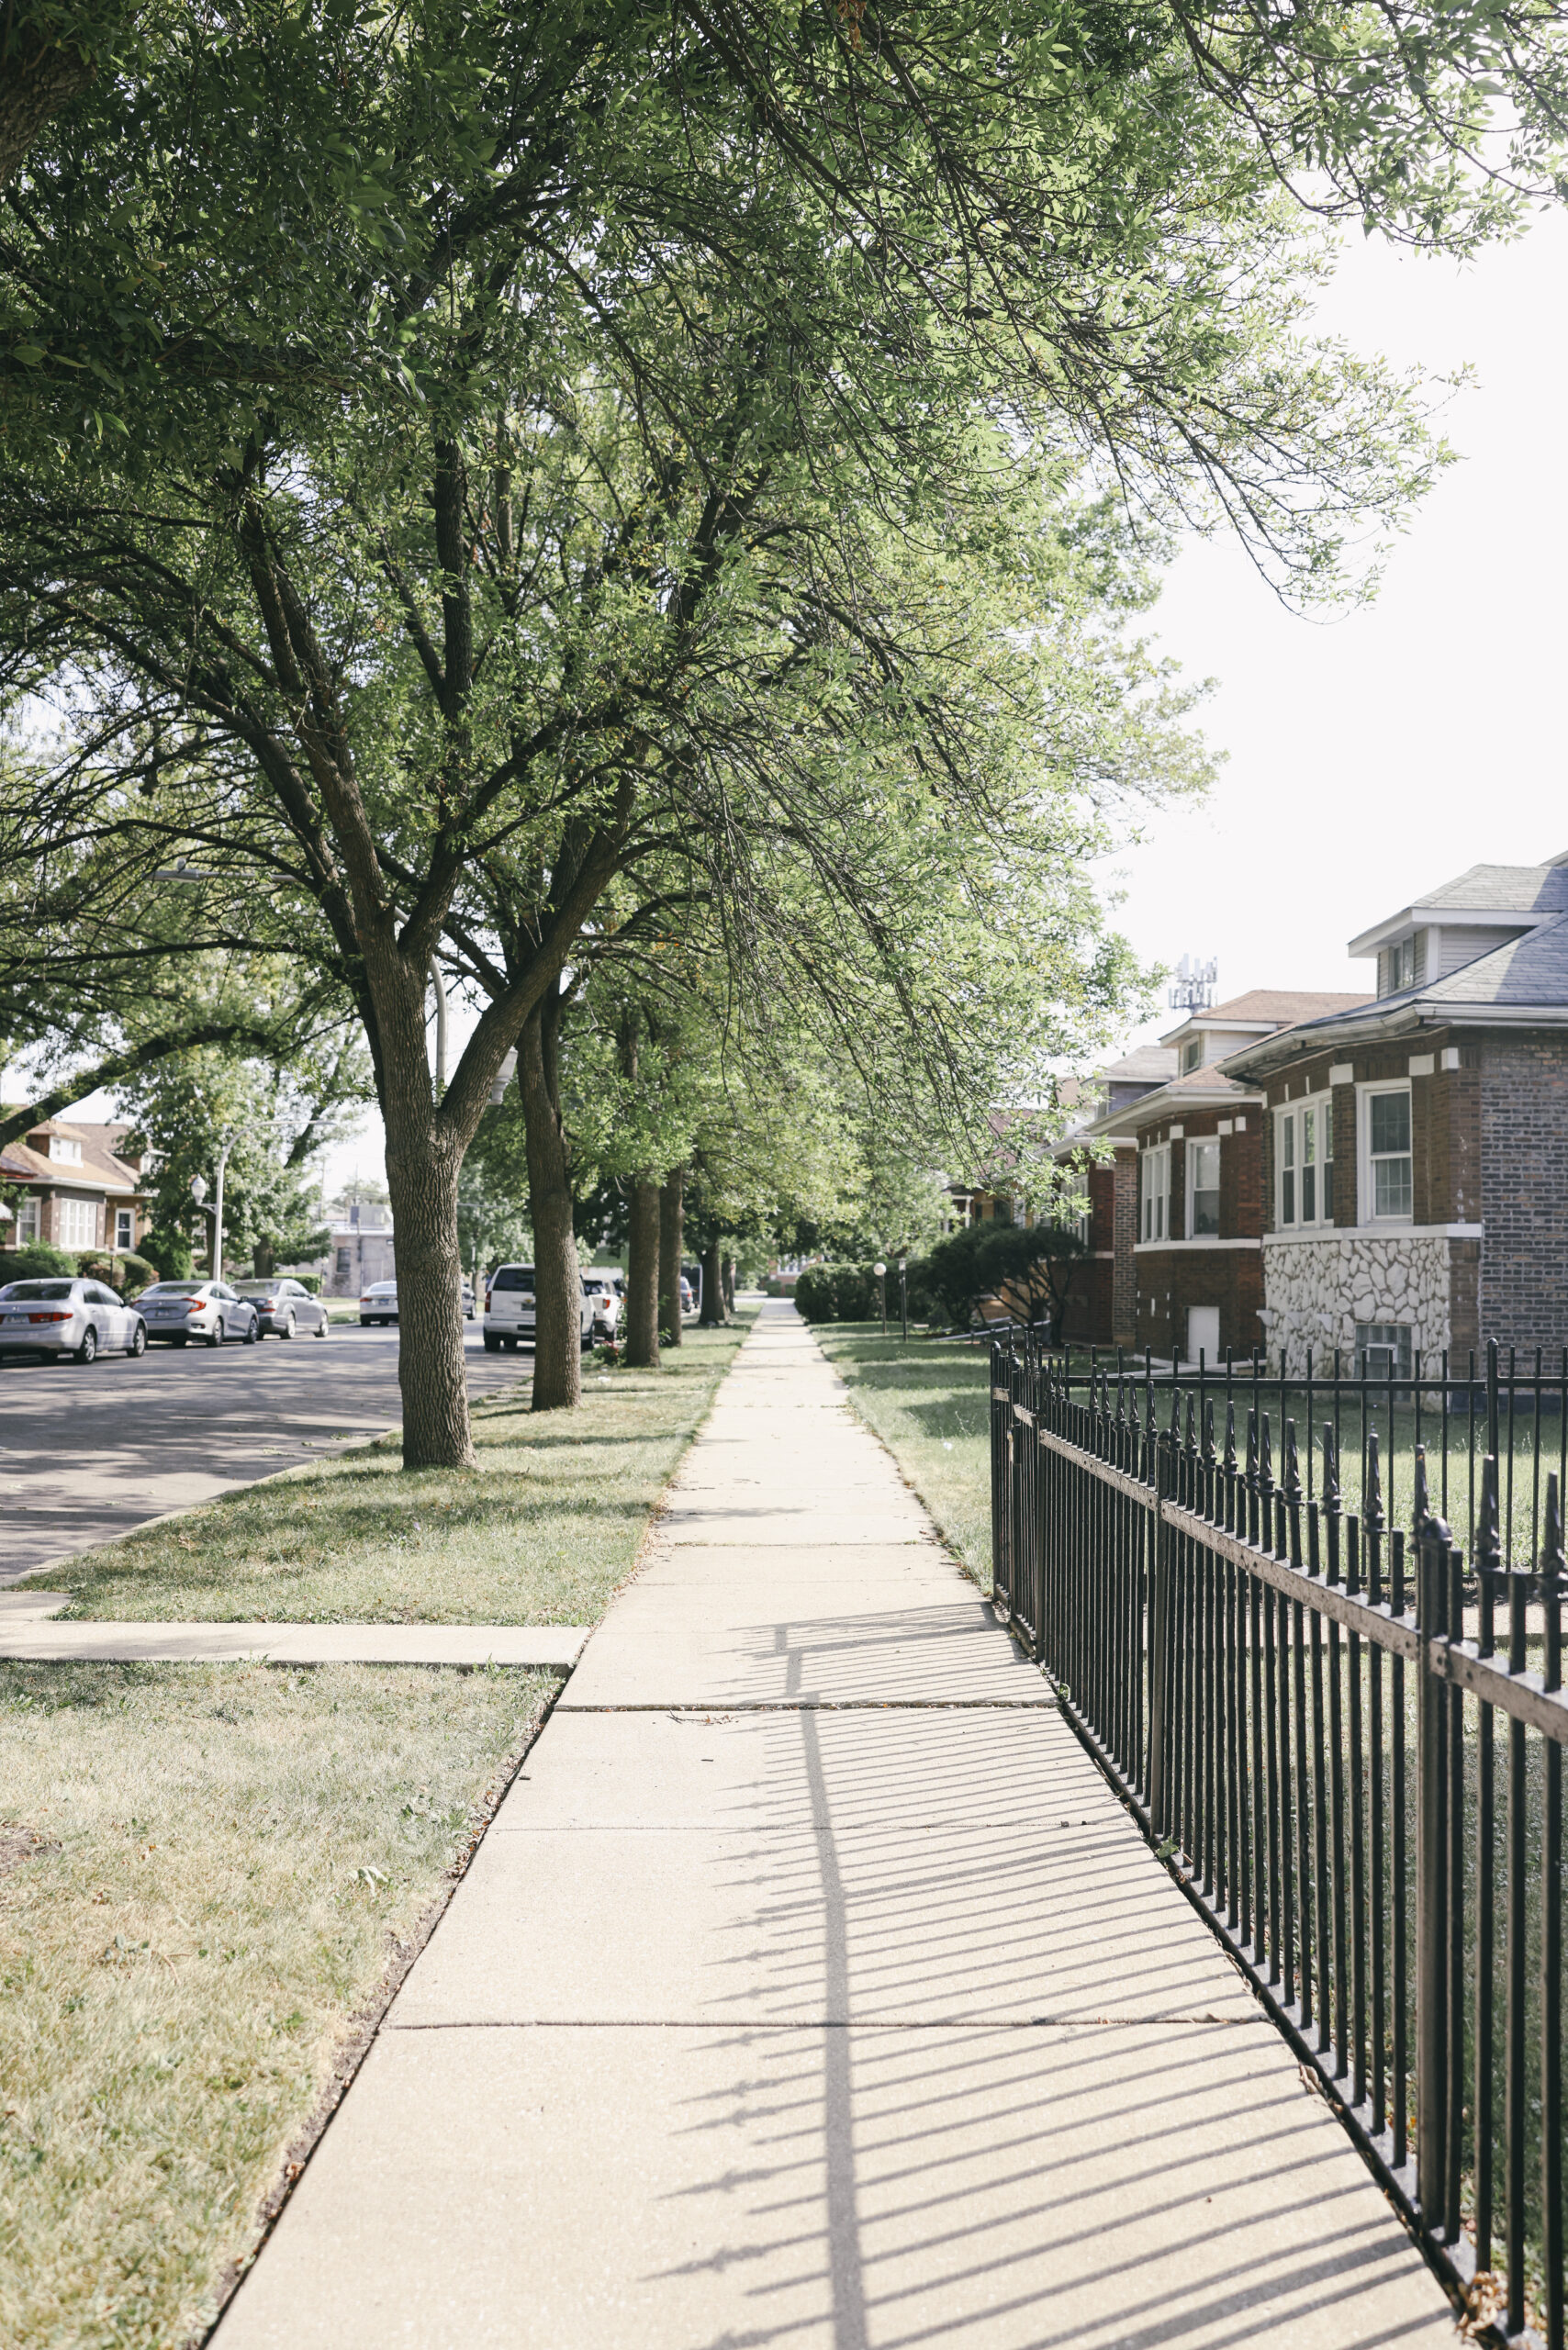 A view of a sidewalk in a neighborhood in Chicago